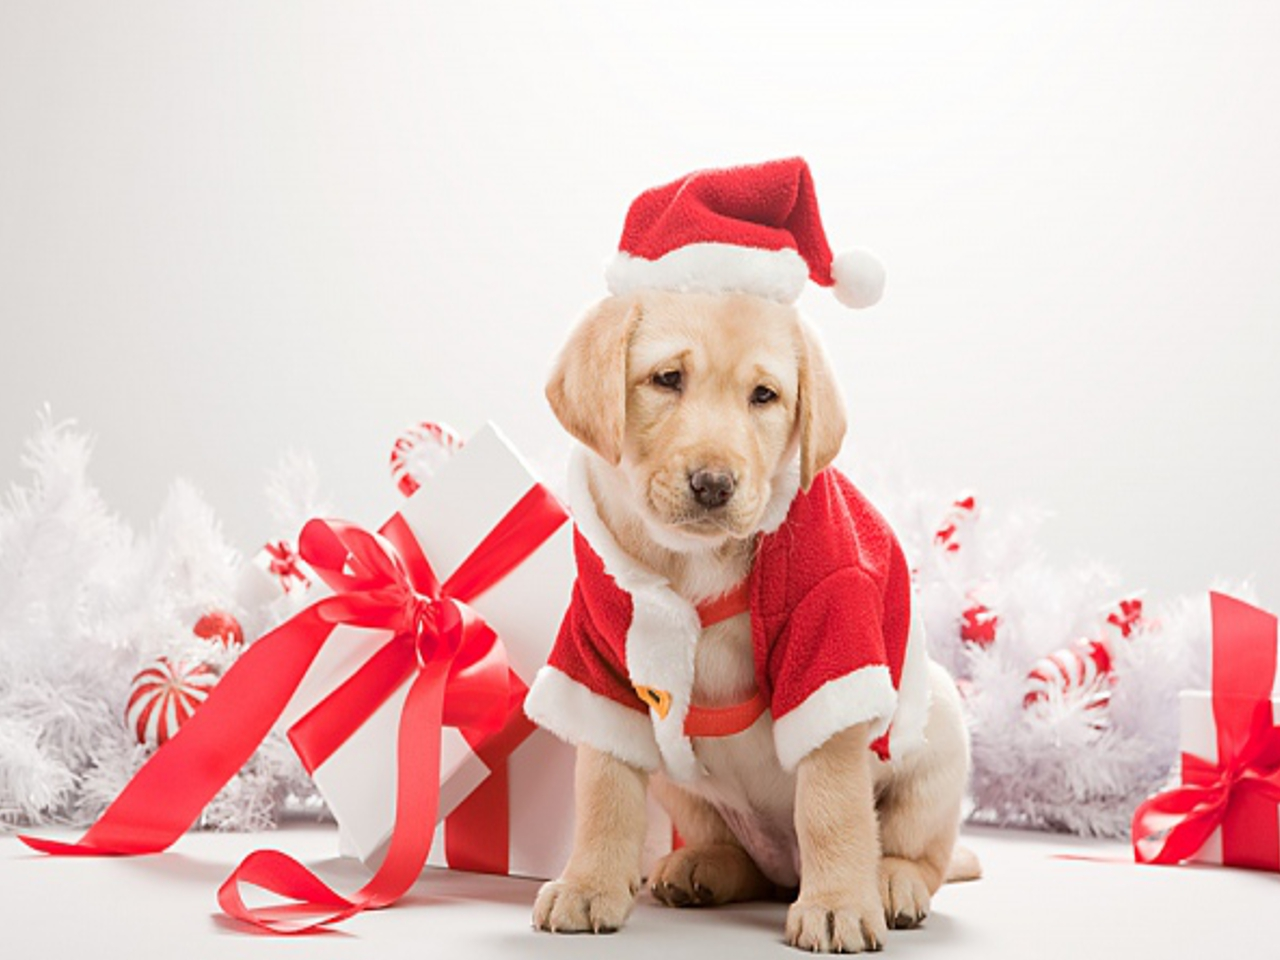 christmas dog wallpaper 2015   Grasscloth Wallpaper 1280x960